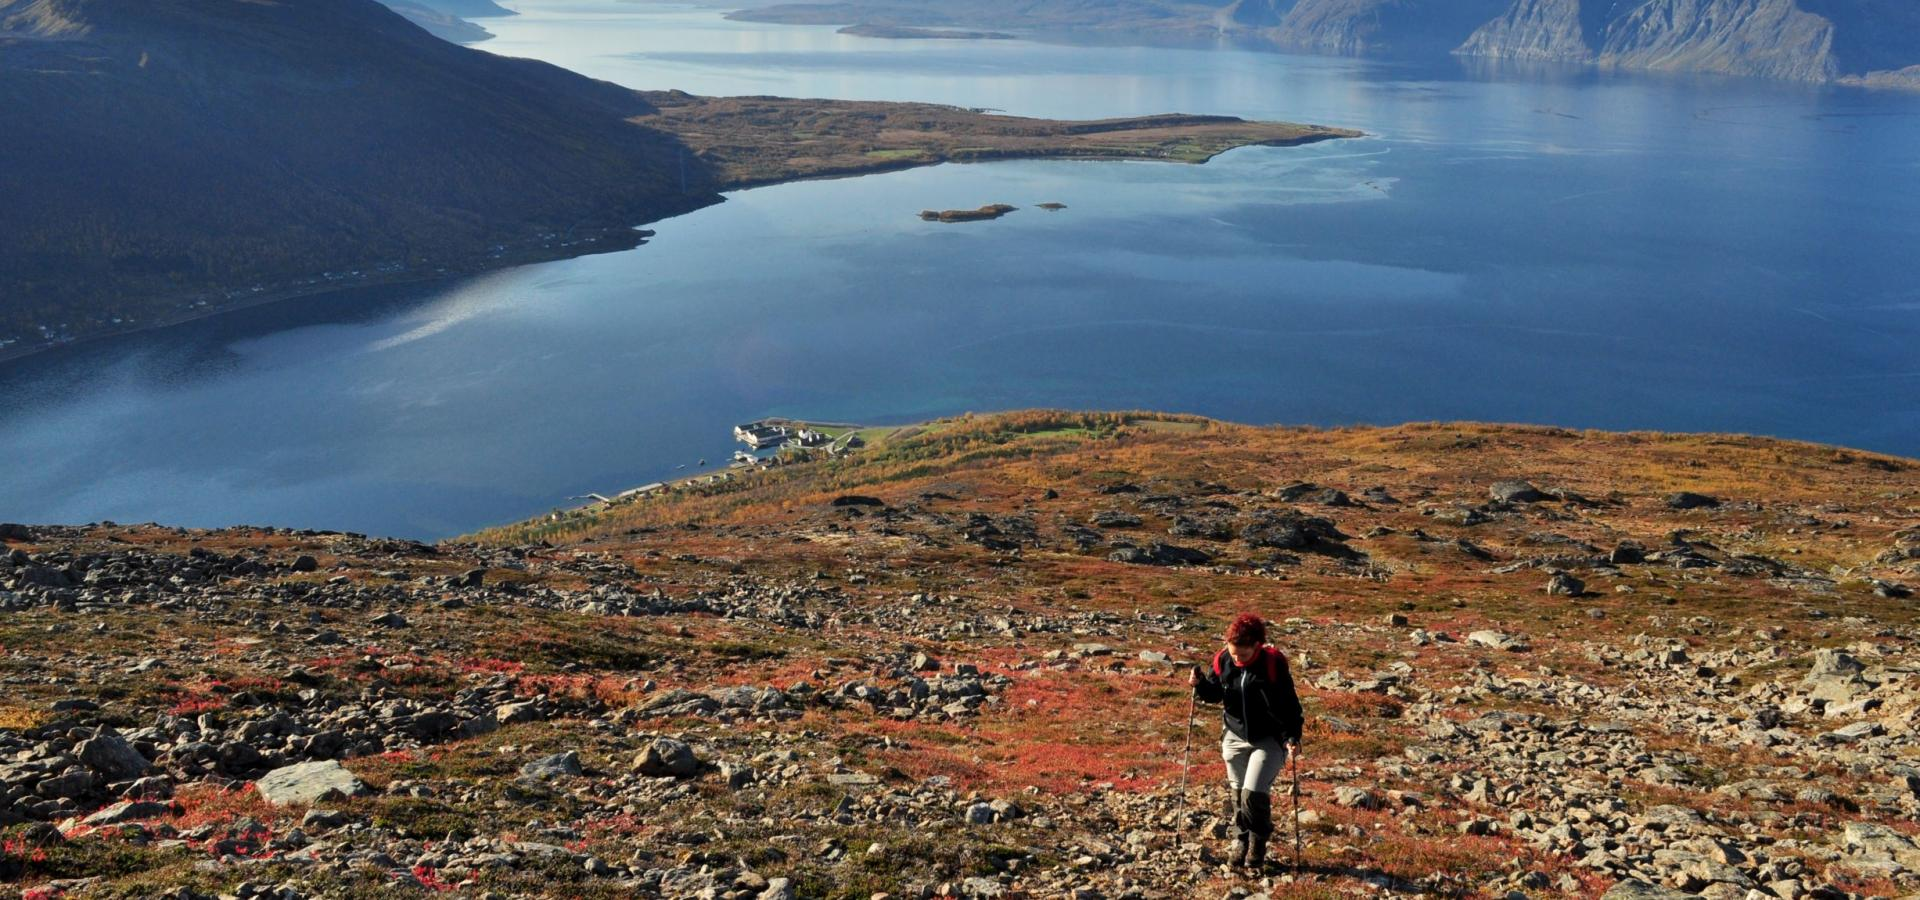 Hiker on the way up Uløytinden in autumn colors, the Lyngenfjord and mountains in the background